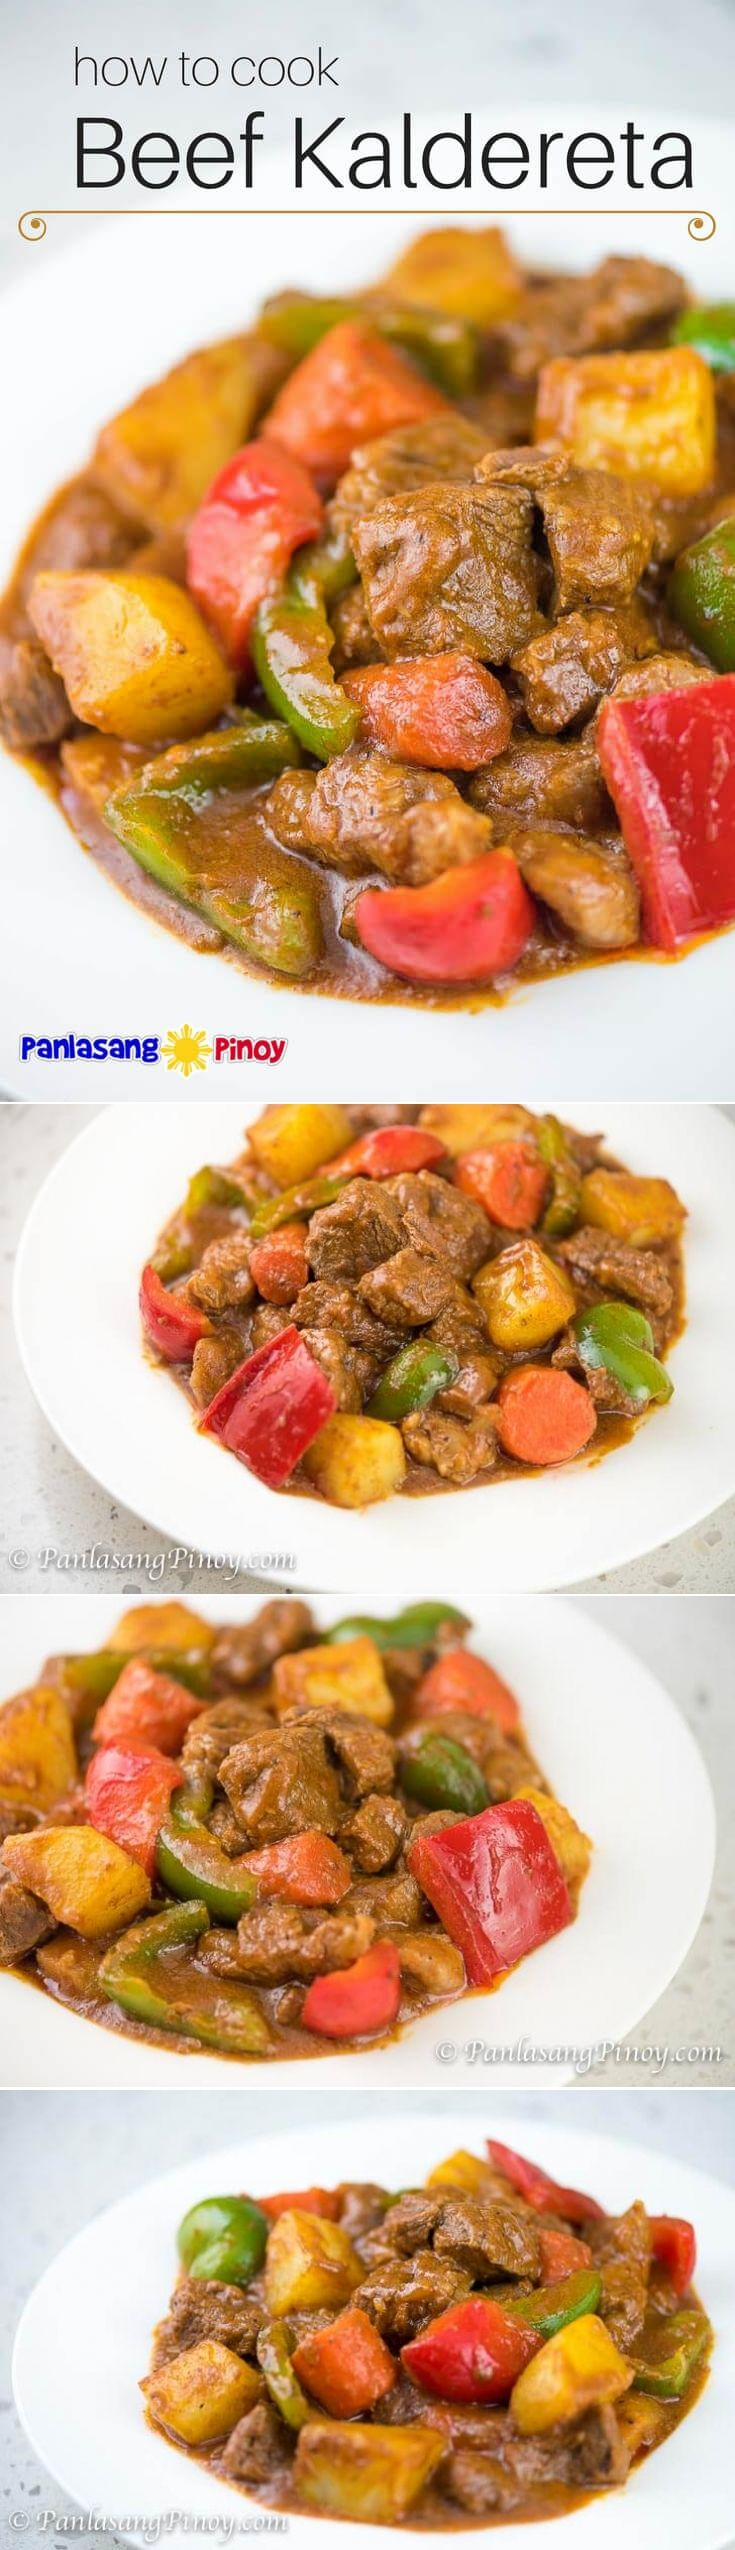 How To Cook Beef Kaldereta - Panlasang Pinoy